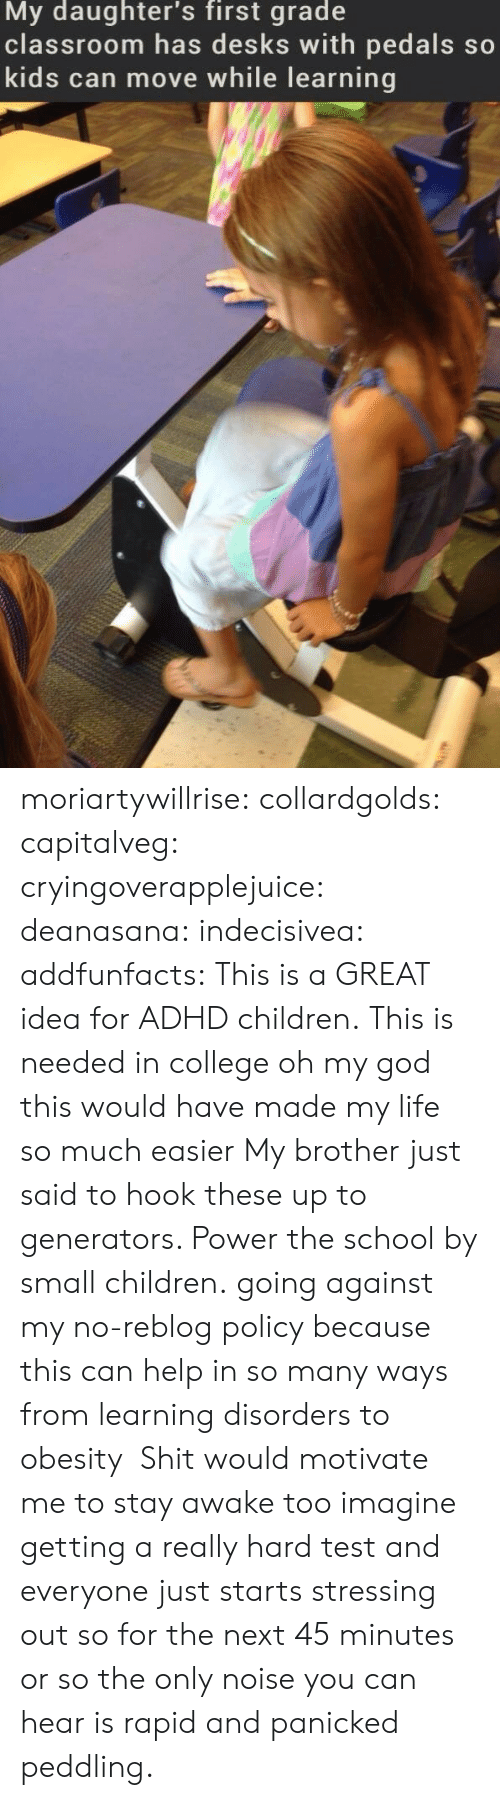 generators: My daughter's first grade  classroom has desks with pedals so  kids can move while learning moriartywillrise: collardgolds:  capitalveg:  cryingoverapplejuice:  deanasana:  indecisivea:  addfunfacts:  This is a GREAT idea for ADHD children.  This is needed in college  oh my god this would have made my life so much easier  My brother just said to hook these up to generators. Power the school by small children.  going against my no-reblog policy because this can help in so many ways from learning disorders to obesity   Shit would motivate me to stay awake too  imagine getting a really hard test and everyone just starts stressing out so for the next 45 minutes or so the only noise you can hear is rapid and panicked peddling.